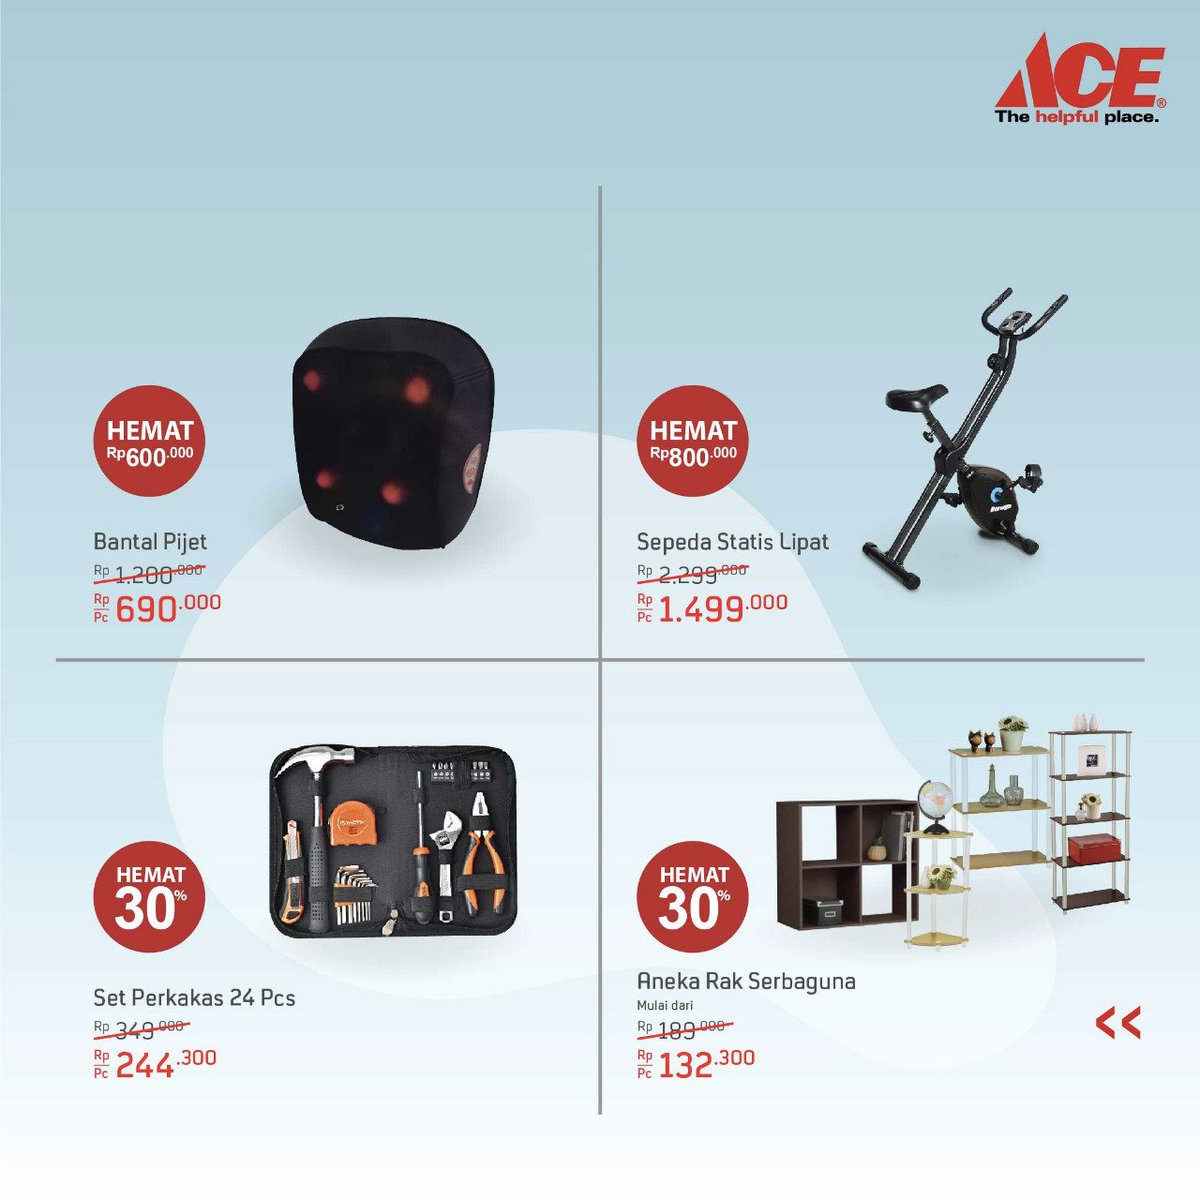 AceHardware - Promo Weekly Offer Periode 01 - 07 Okt 2018